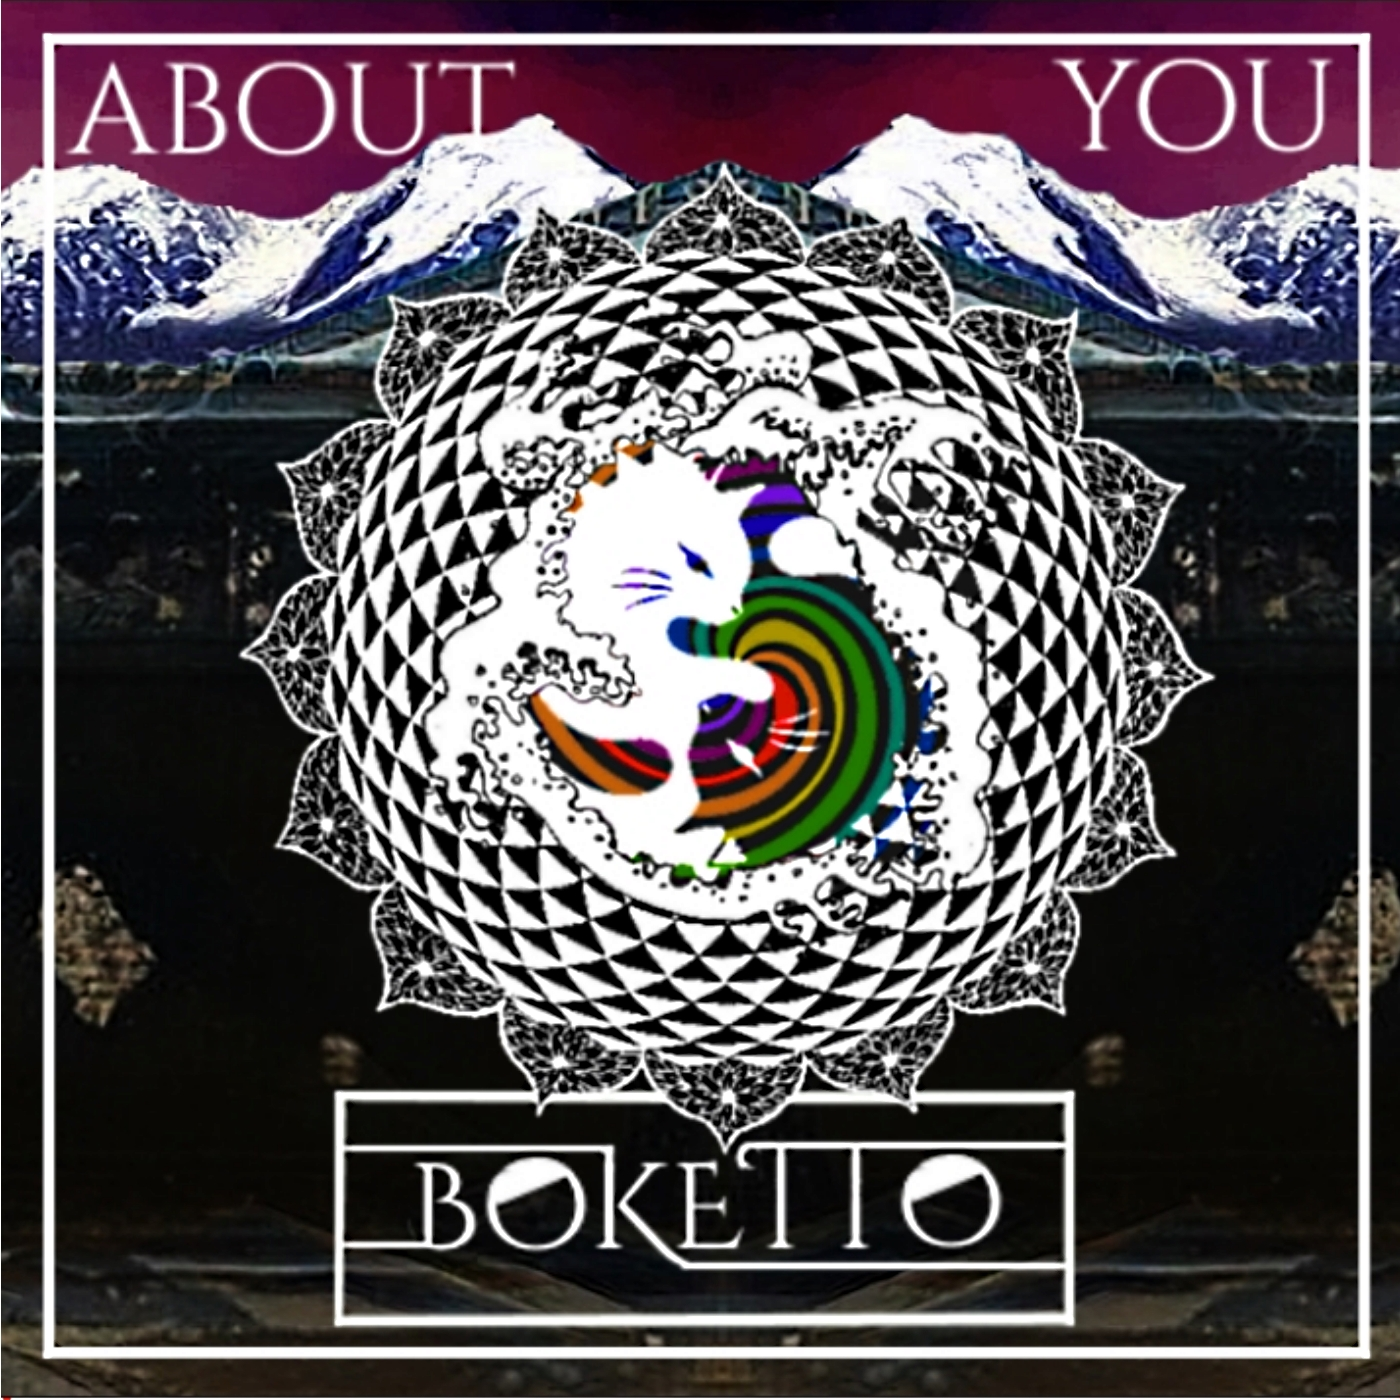 Gazing Vacantly? Boketto releases their debut album, About You